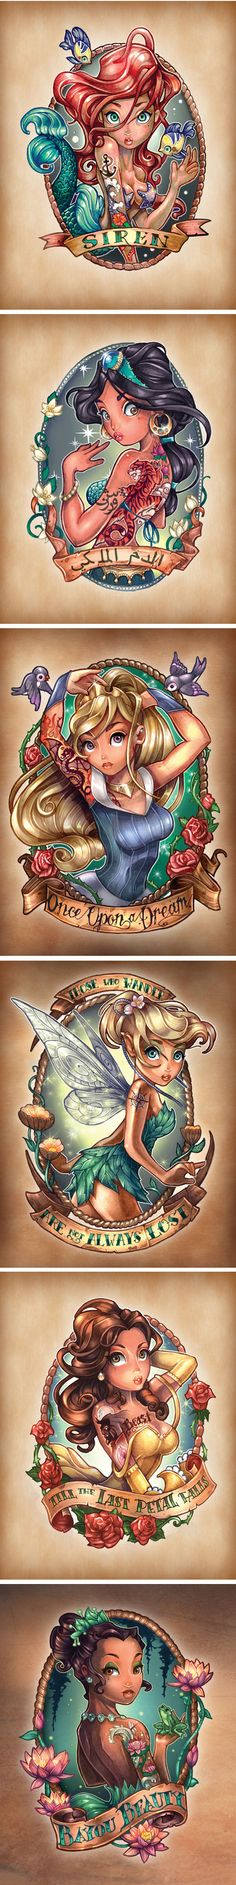 Disney Princesses As Vintage Tattoos